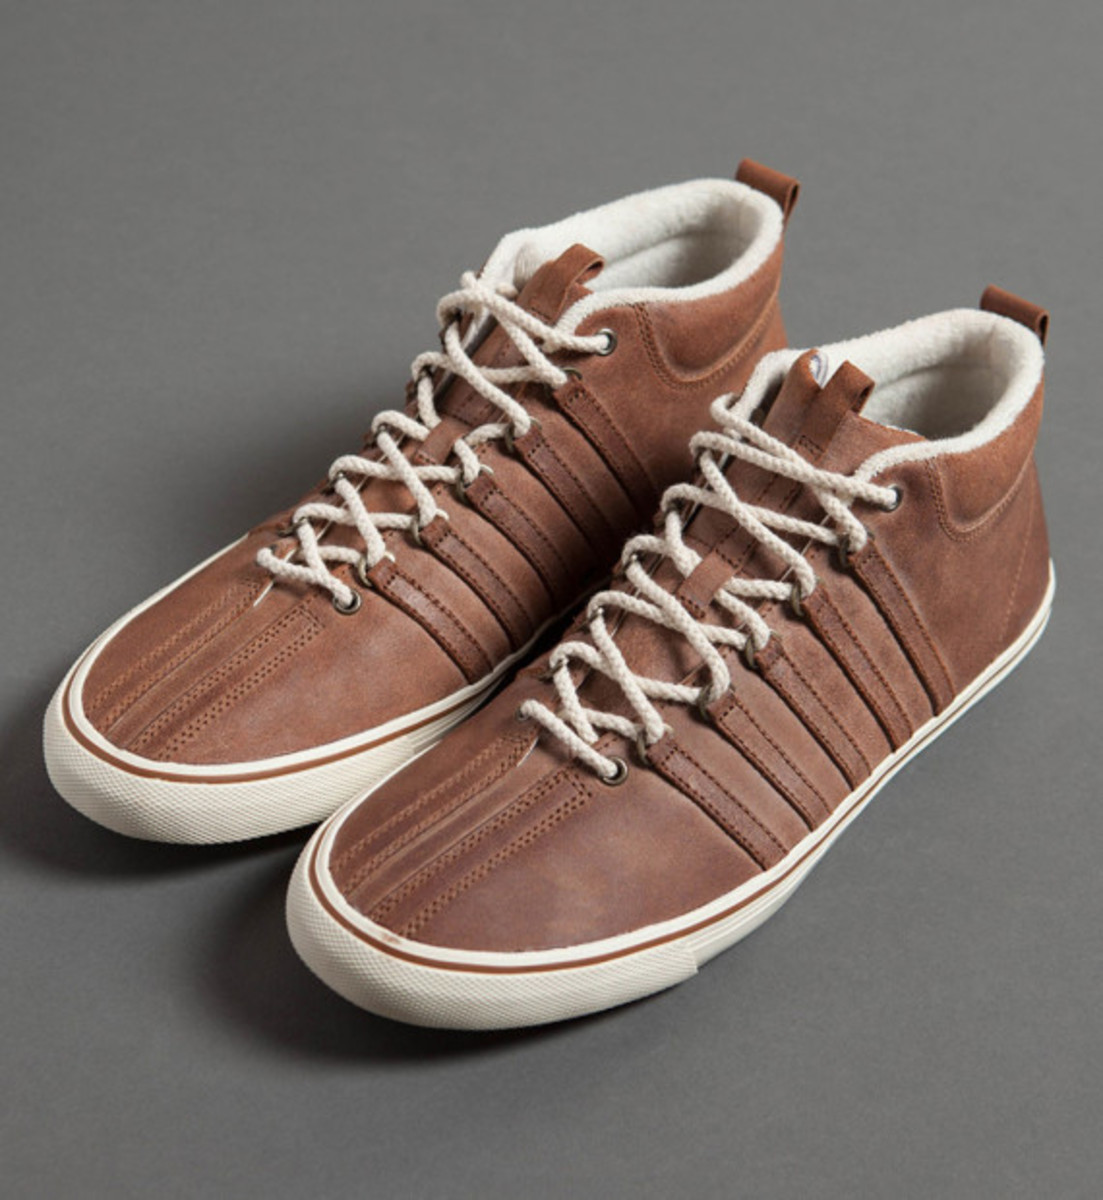 k-swiss-by-billy-reid-spring-summer-2013-collection-02